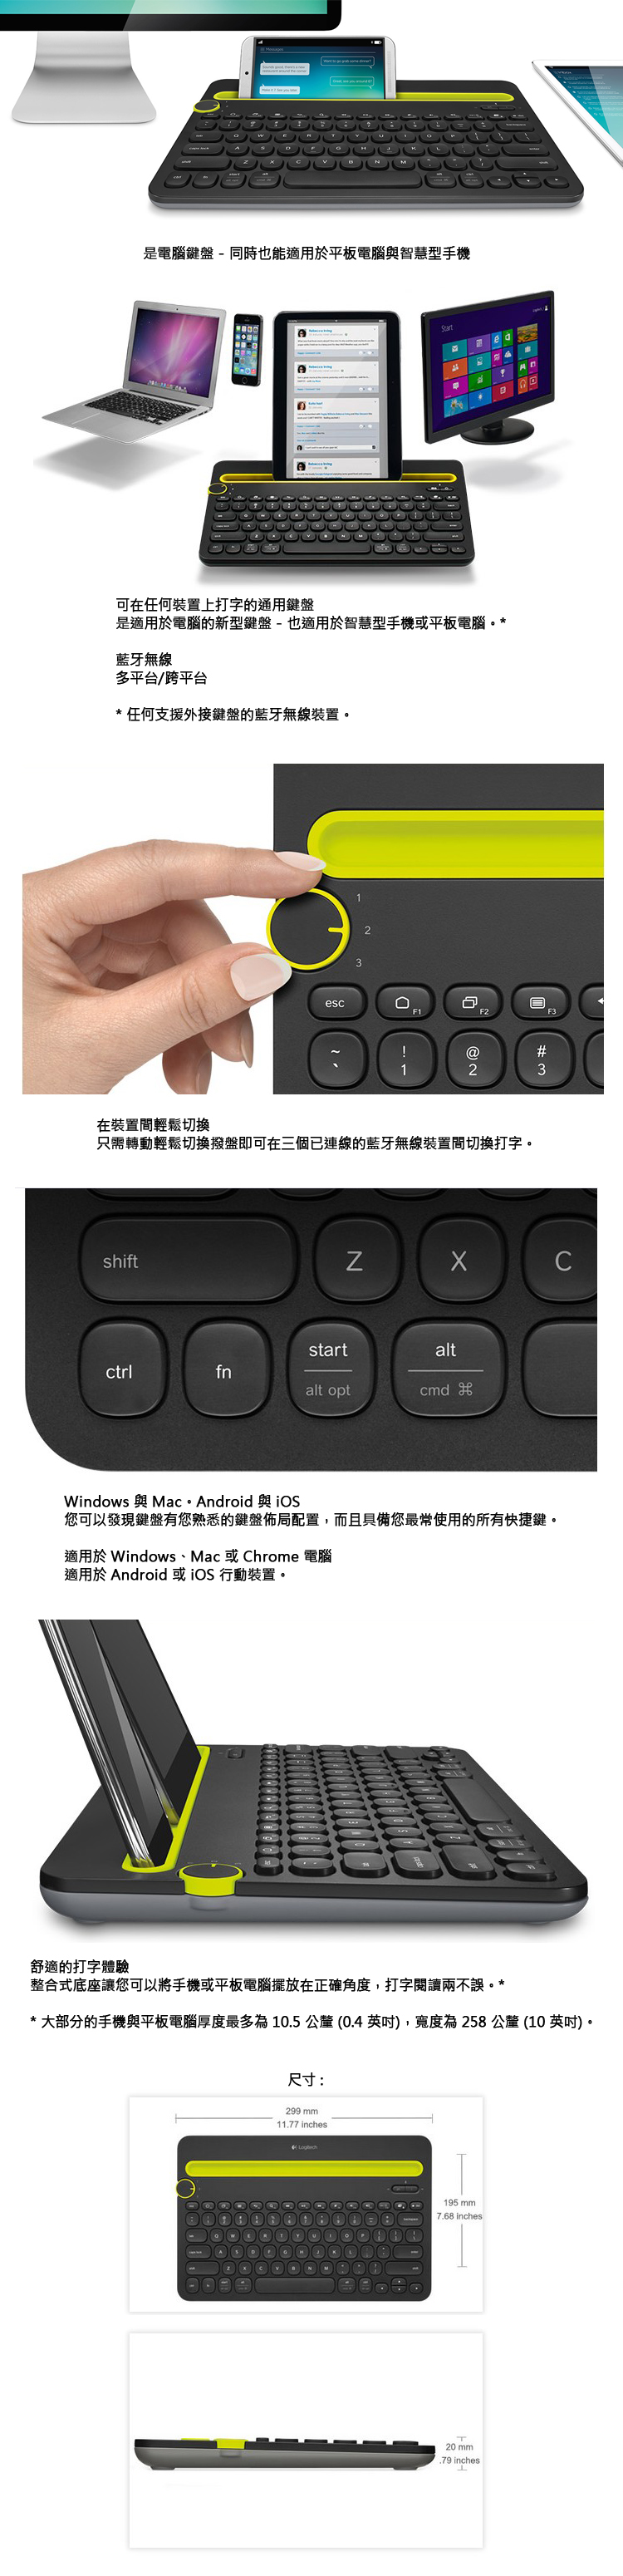 keyboard-k480-LONG.jpg